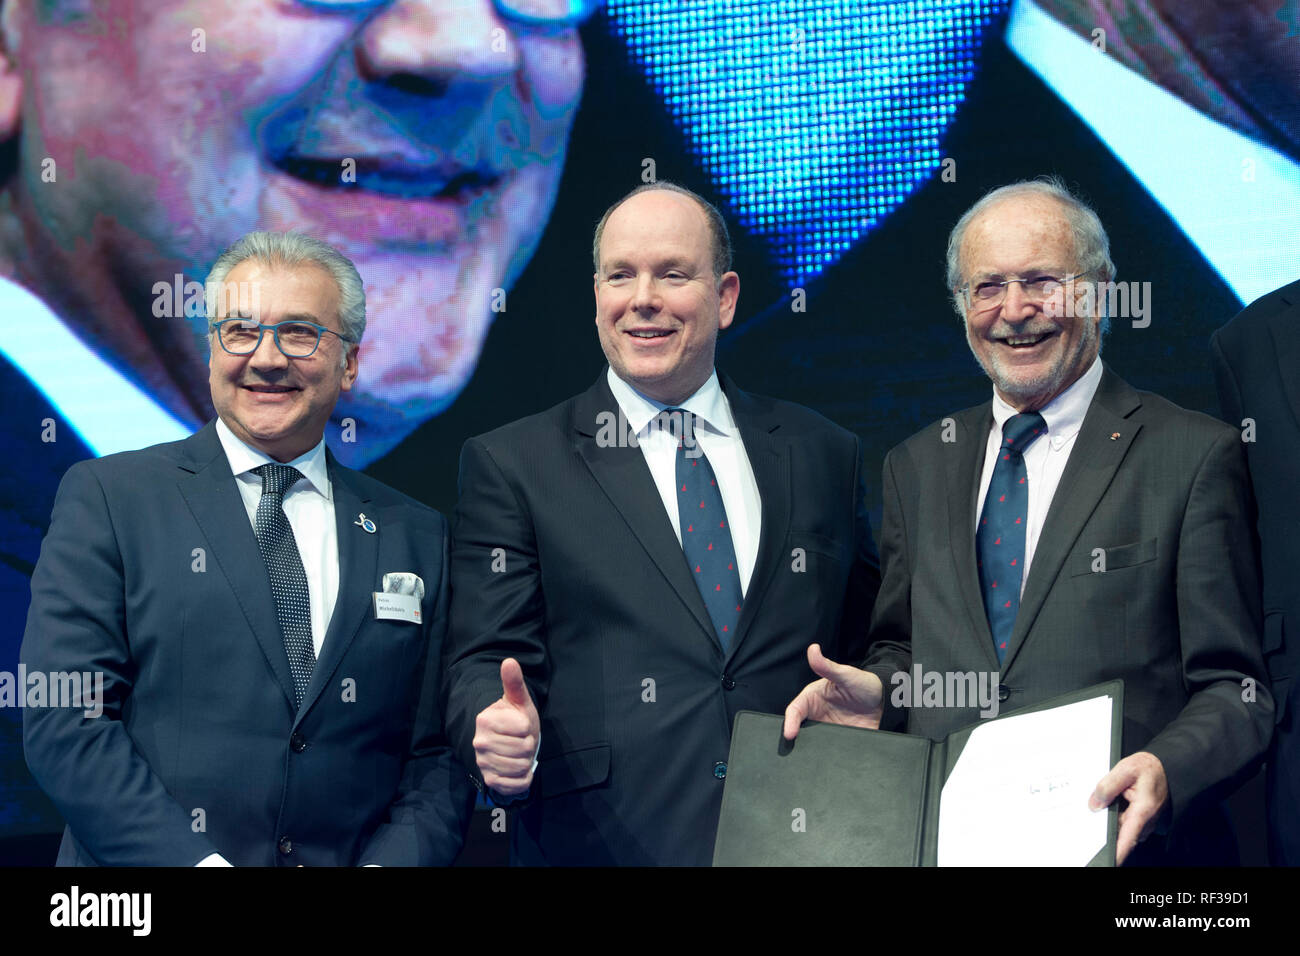 Duesseldorf, Deutschland. 21st Jan, 2019. Presenting the new cooperation agreement for the continuation of the Aûocean Tribute, Aú Award for the next three years: from left: Petros MICHELIDAKIS, Head of the BOOT, Fuerst ALBERT II of Monaco, Vice-President of the First Albert II Foundation, HE Bernard Fautrier, Blue Motion Night and presentation of the Ocean Tribute Award at the boat show 2019, boat show 2019 in Duesseldorf from 19 to 27 January 2019, 21.01.2019. ¬   usage worldwide Credit: dpa/Alamy Live News - Stock Image